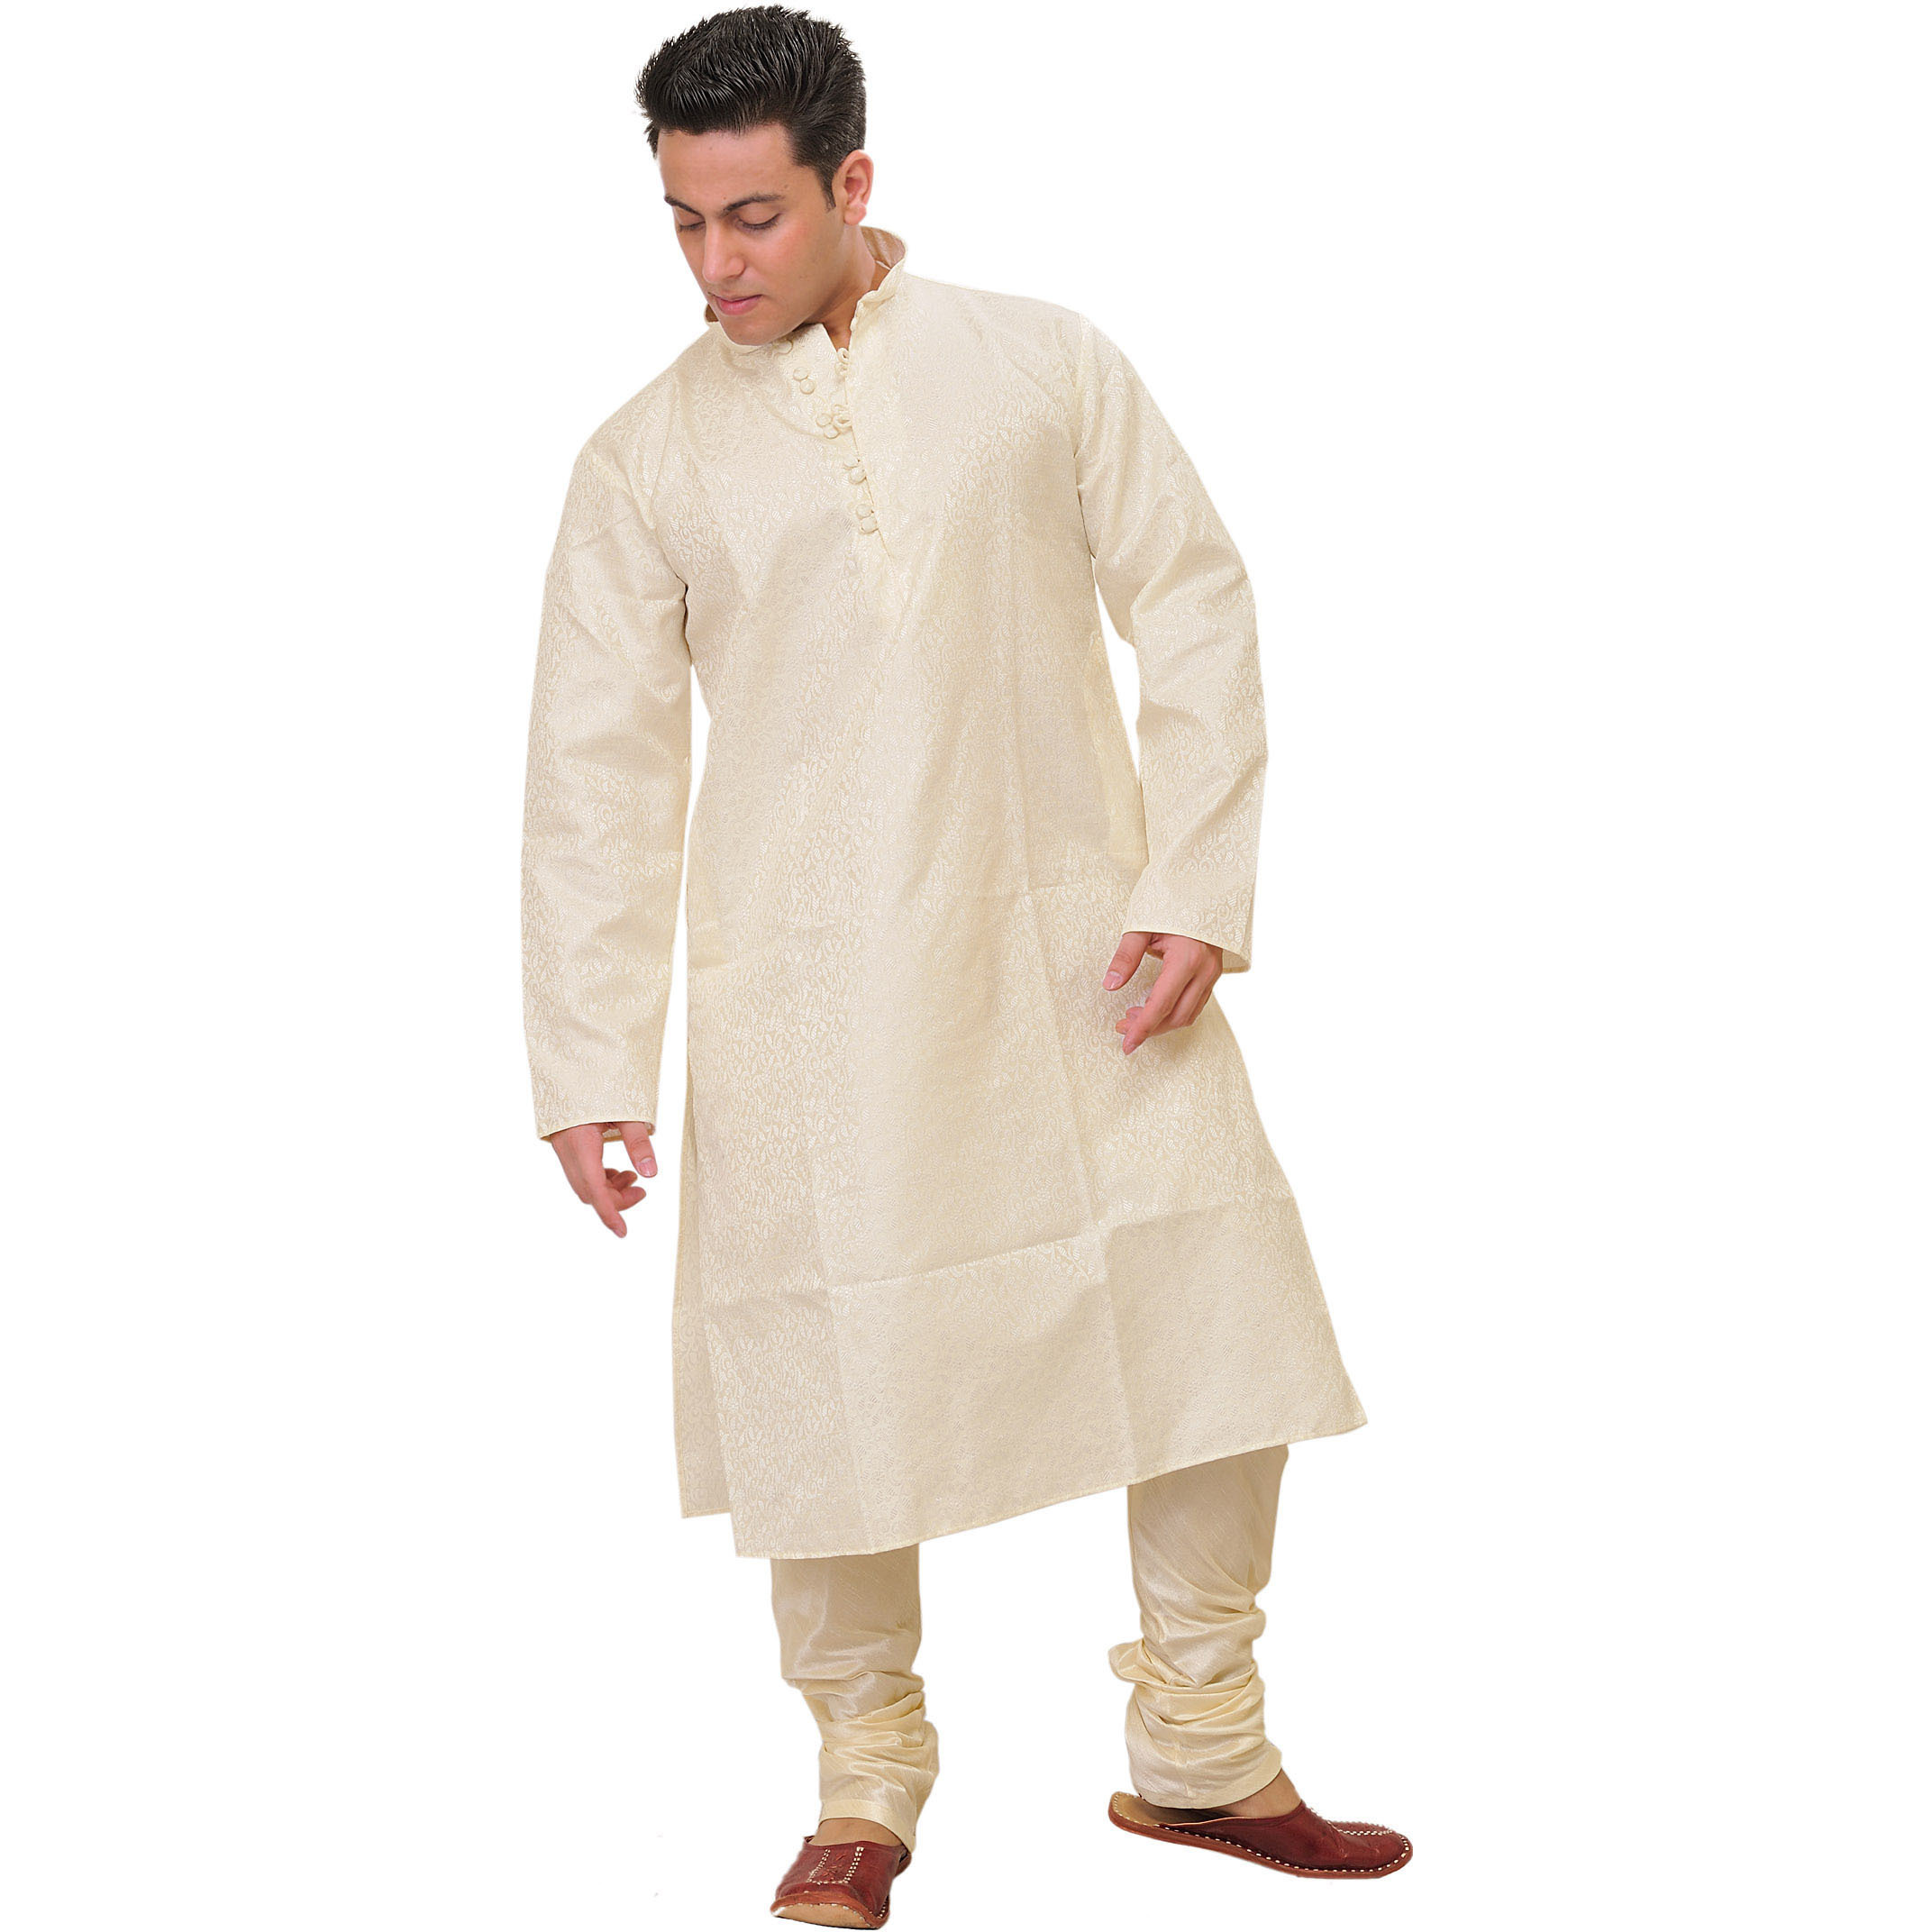 Ivory Kurta Pajama Set with Floral Jacquard Weave in Self